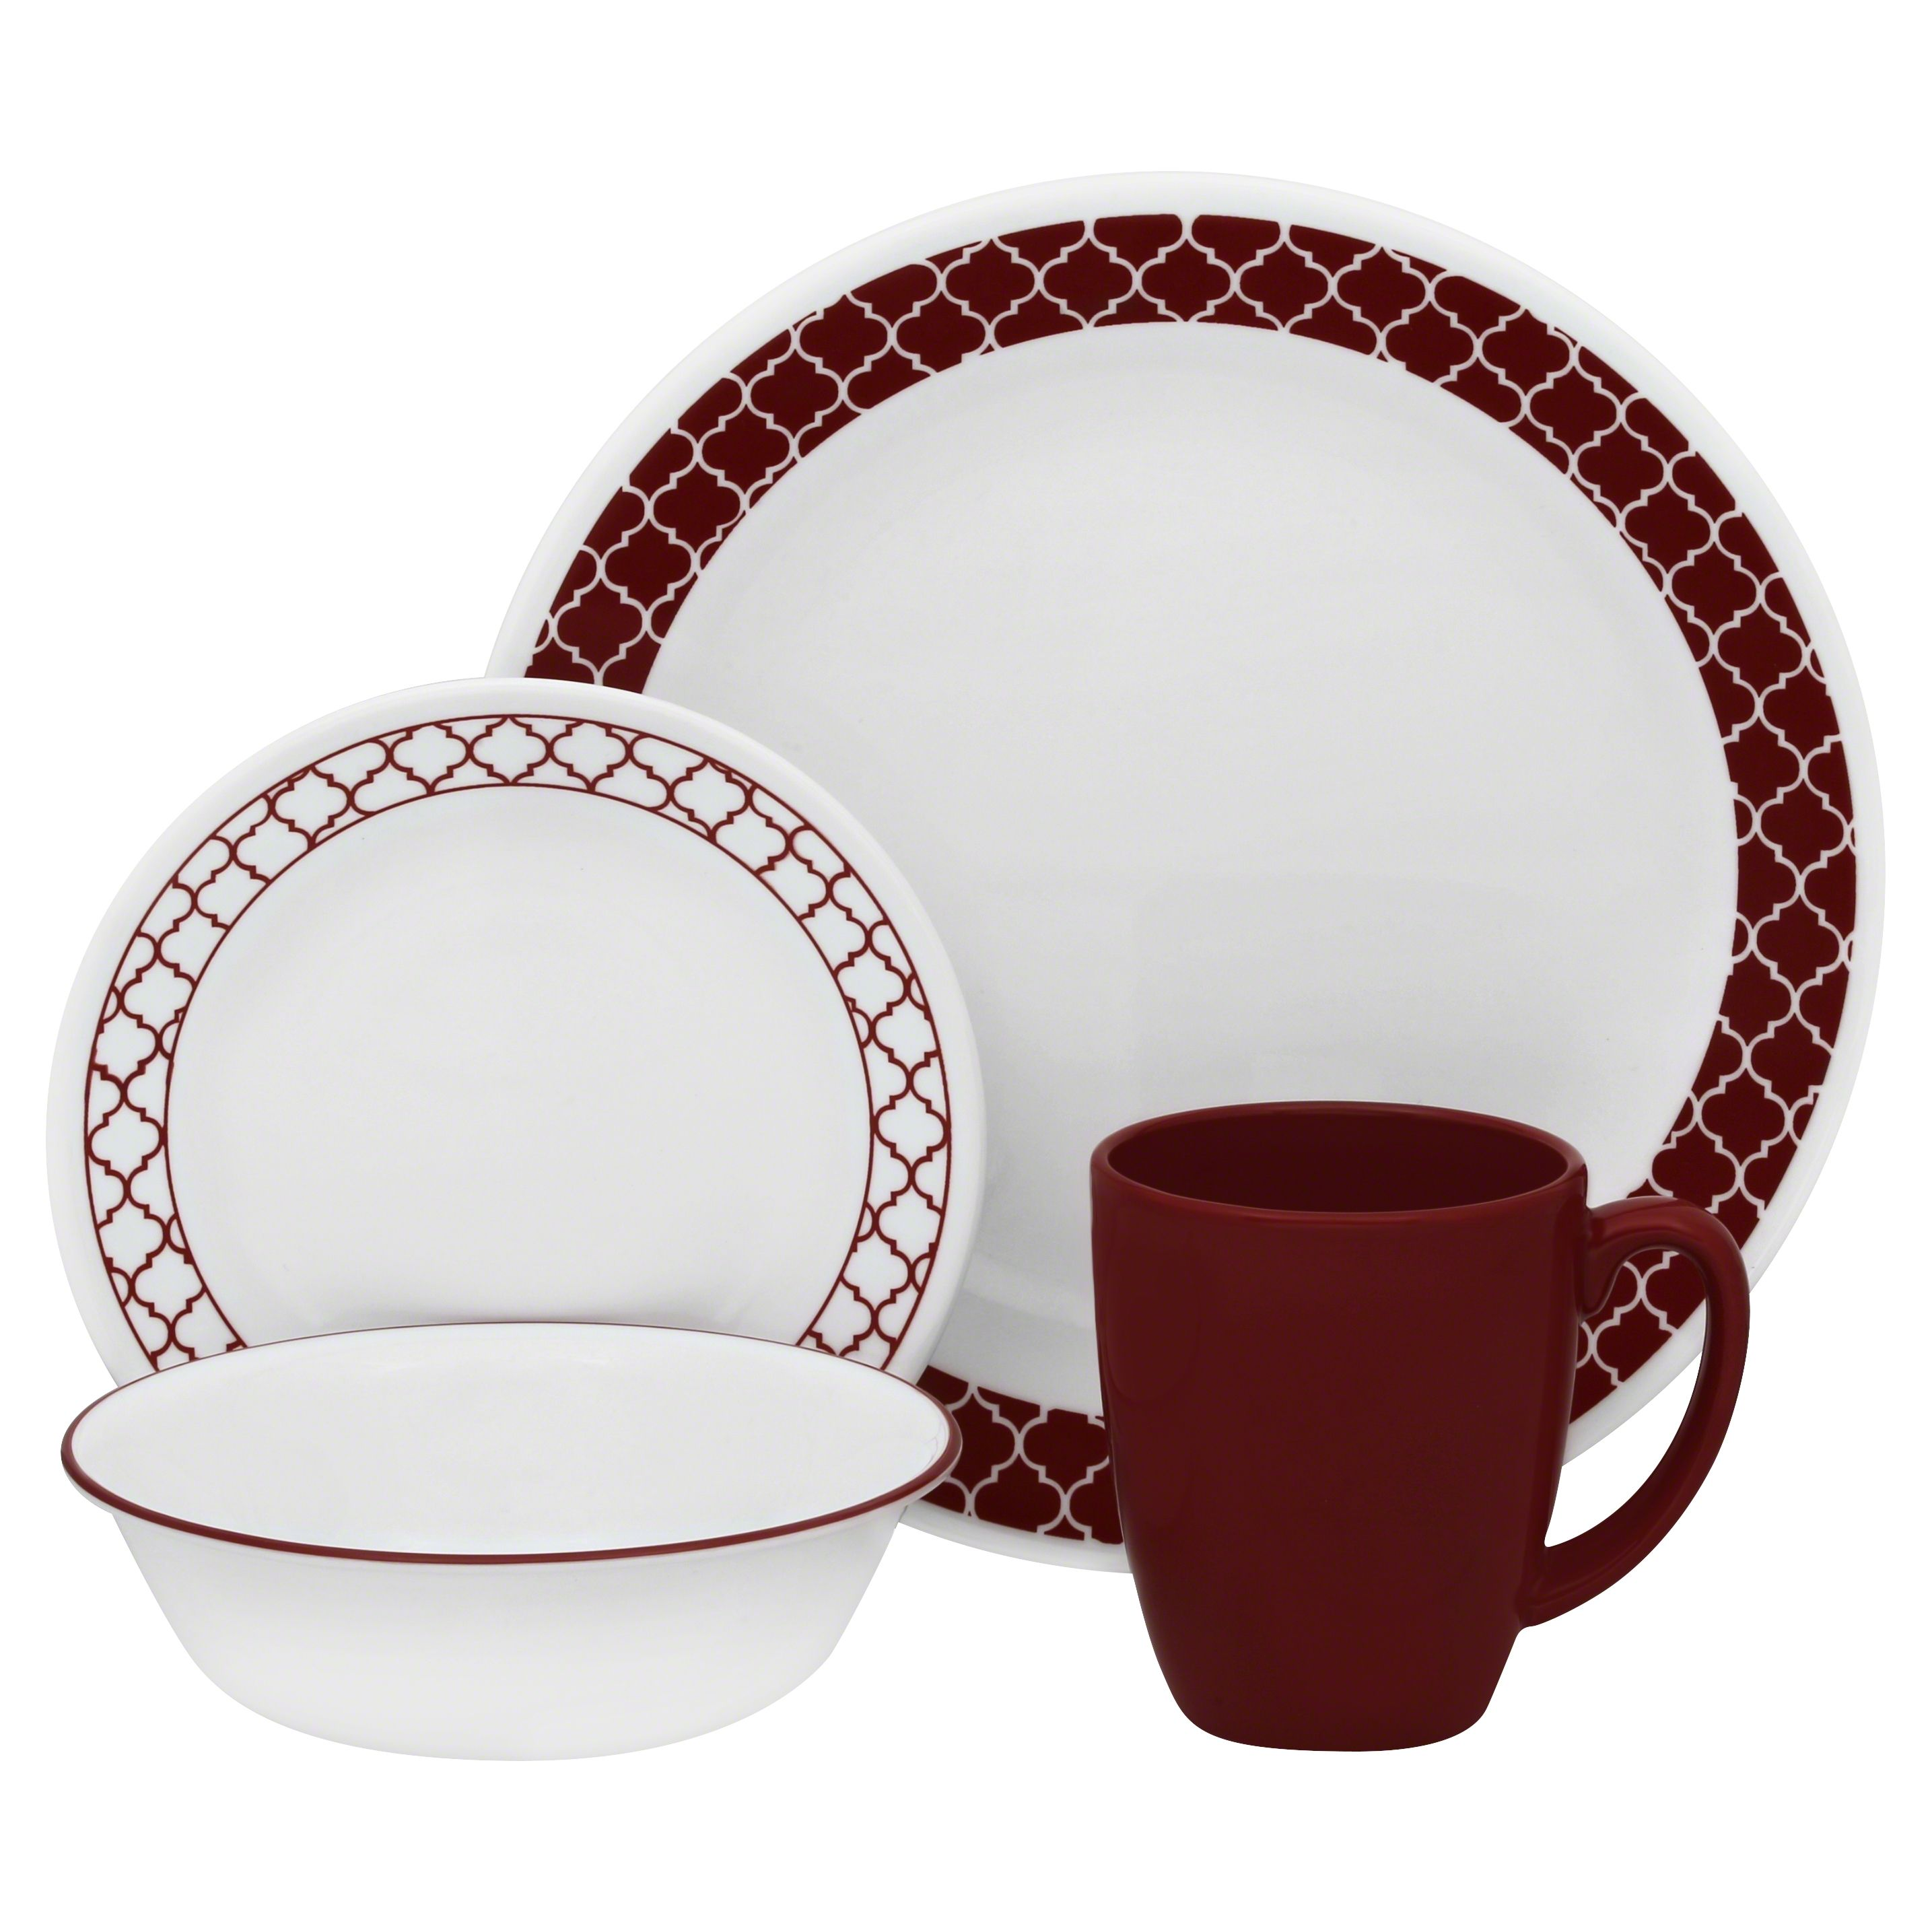 Corelle 16Pc. Dinnerware Set Crimson Trellis, Red (With